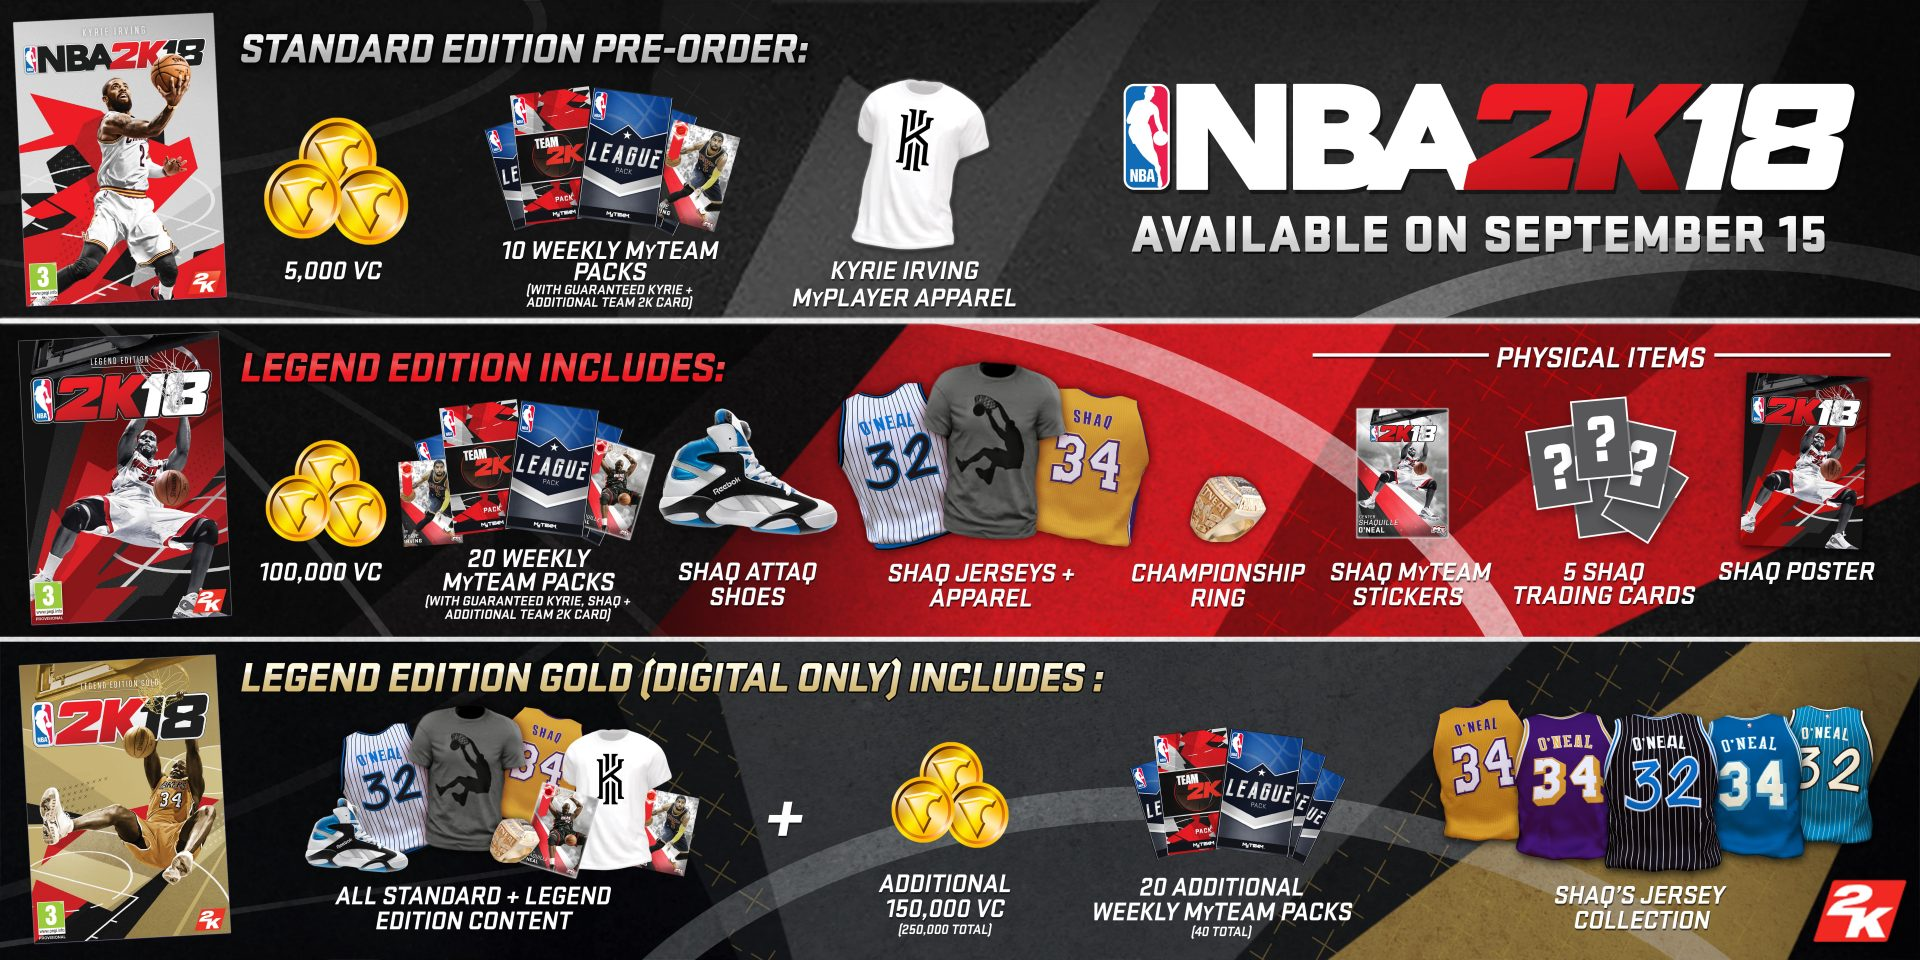 So Who's The Face Of NBA 2K18?